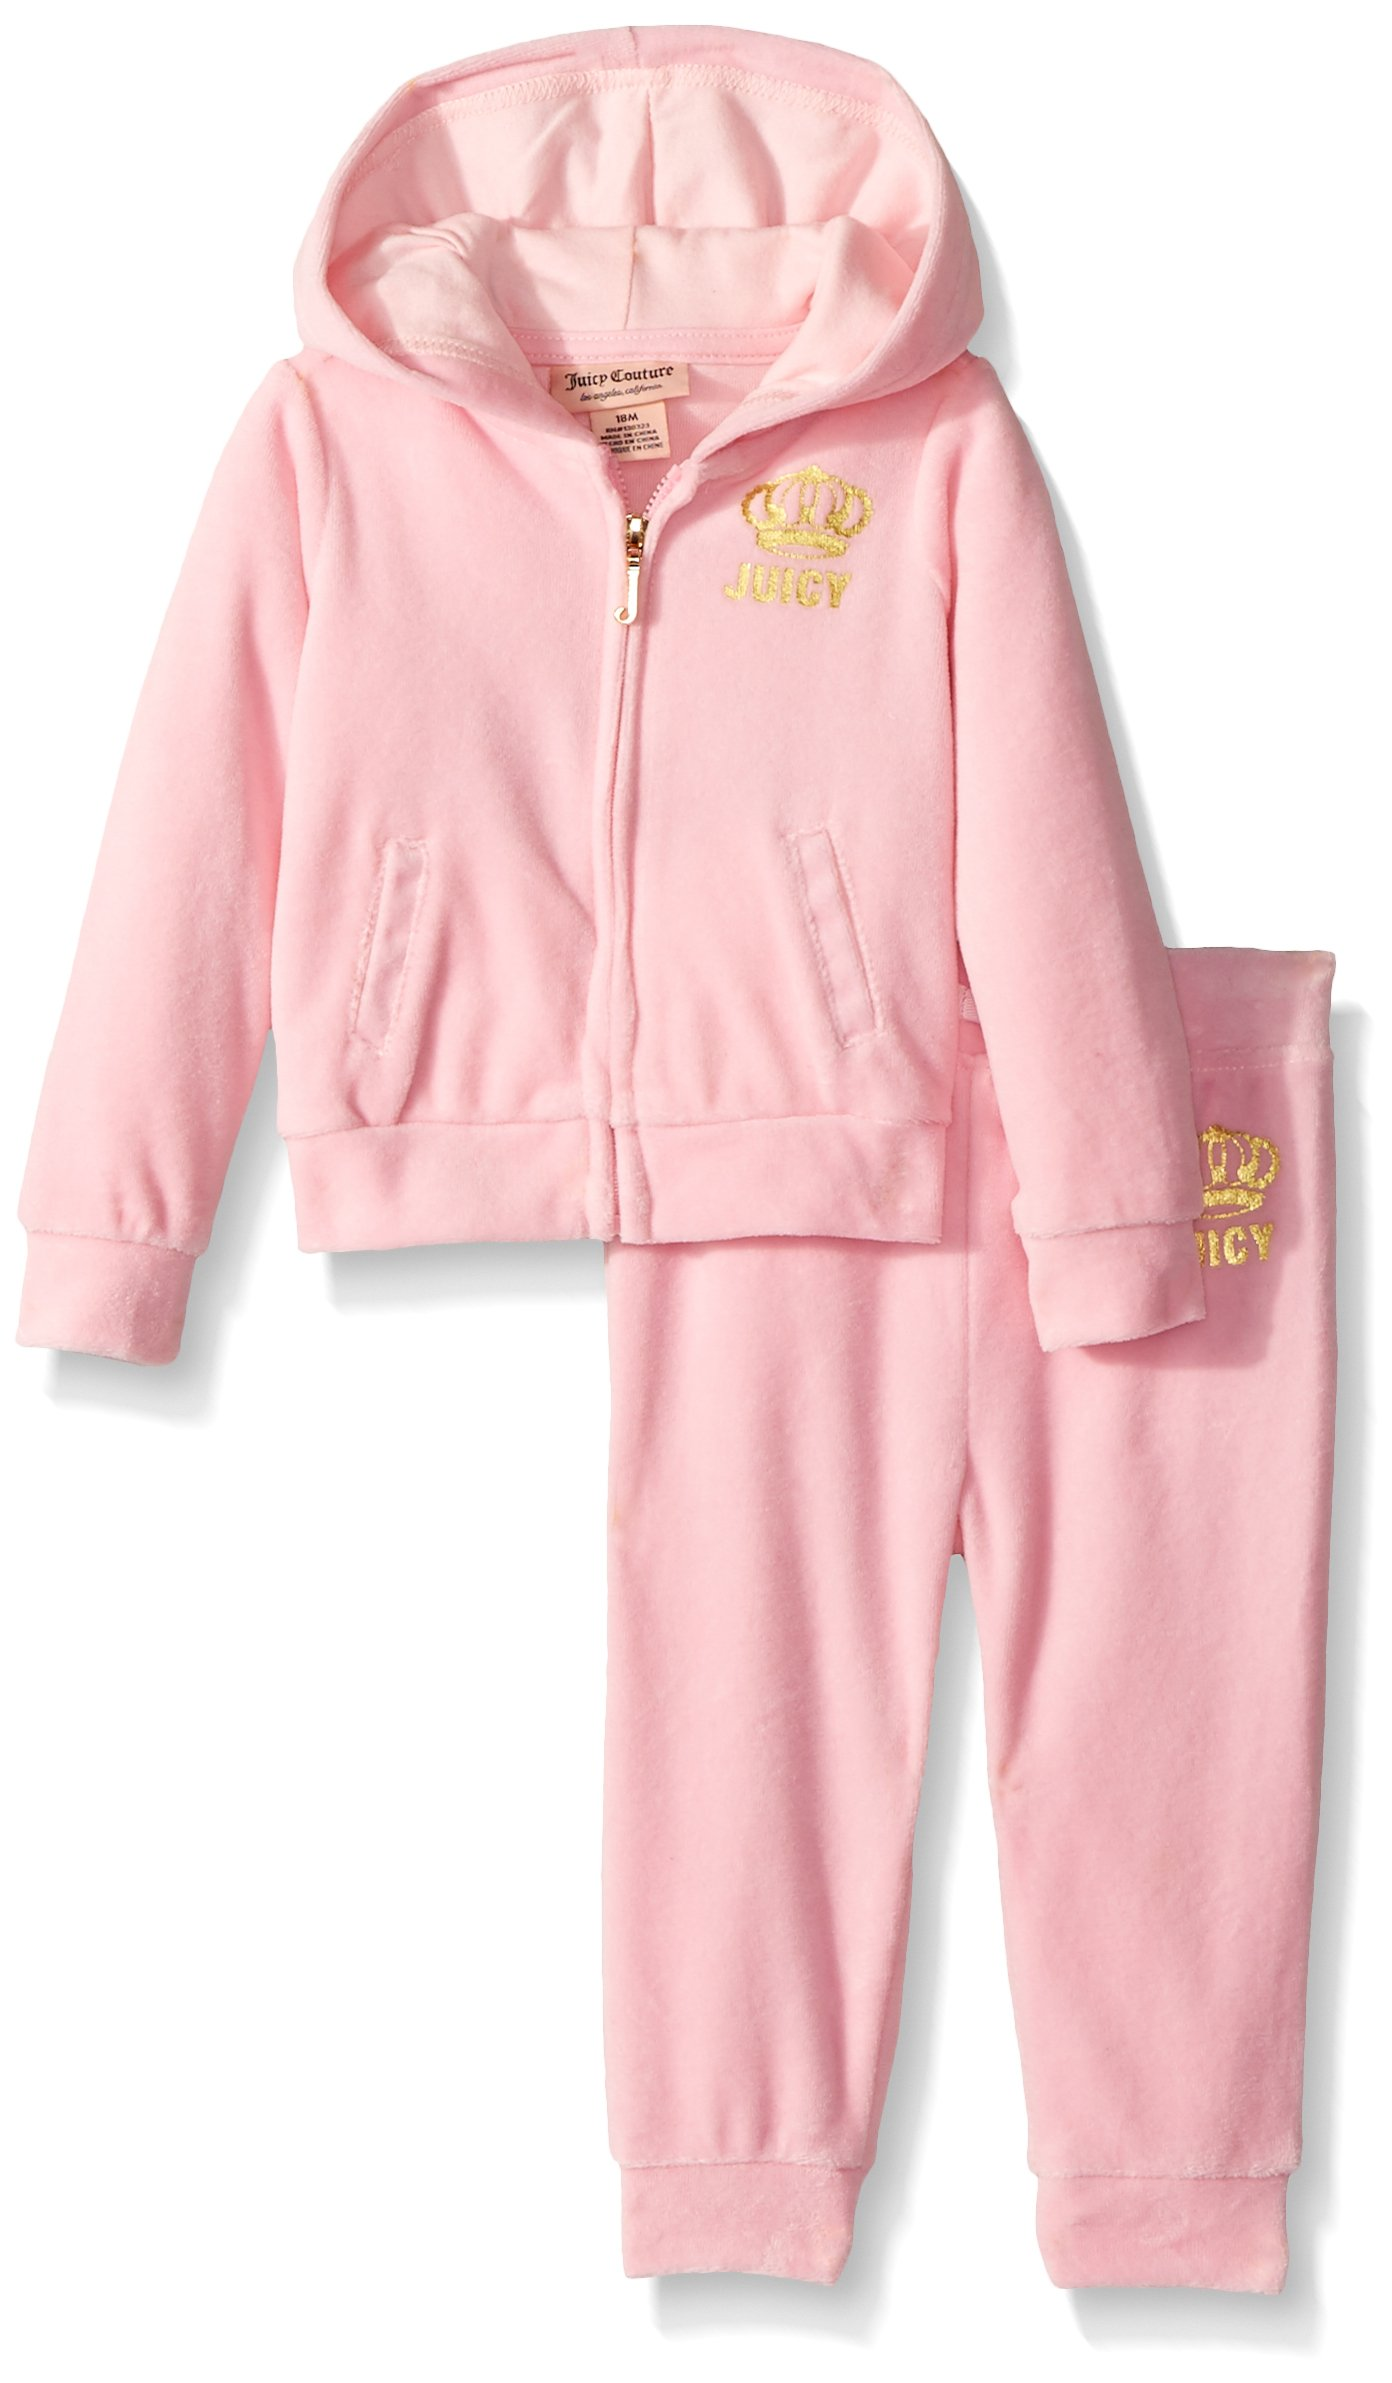 Juicy Couture Girls' Big 2 Piece Velour Pants Set, Light Pink, 12